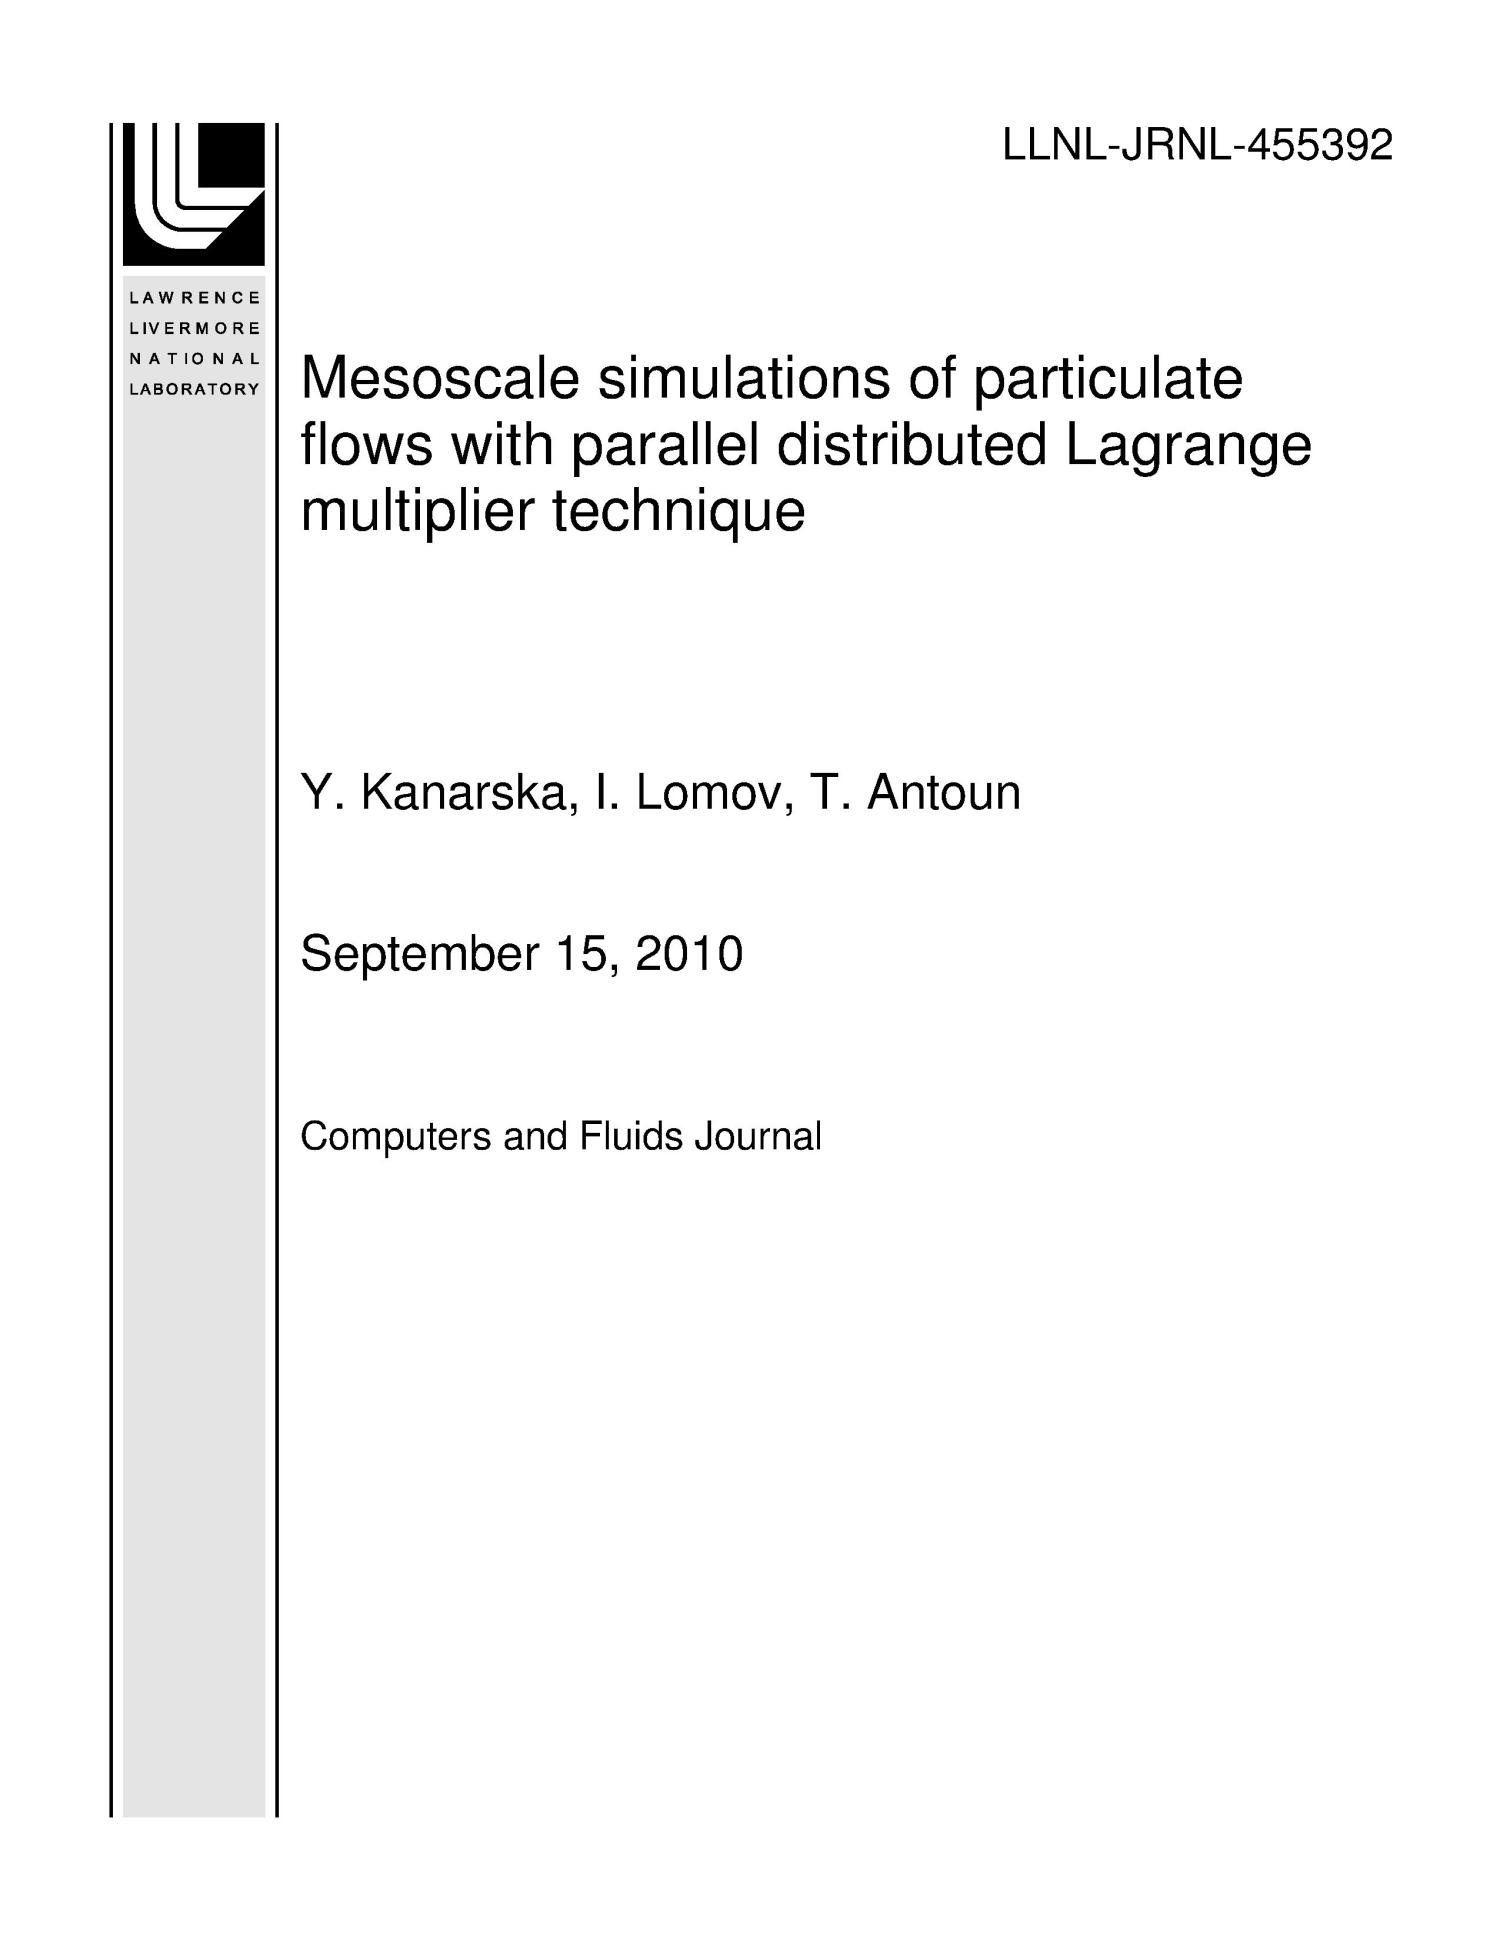 Mesoscale simulations of particulate flows with parallel distributed Lagrange multiplier technique                                                                                                      [Sequence #]: 1 of 47